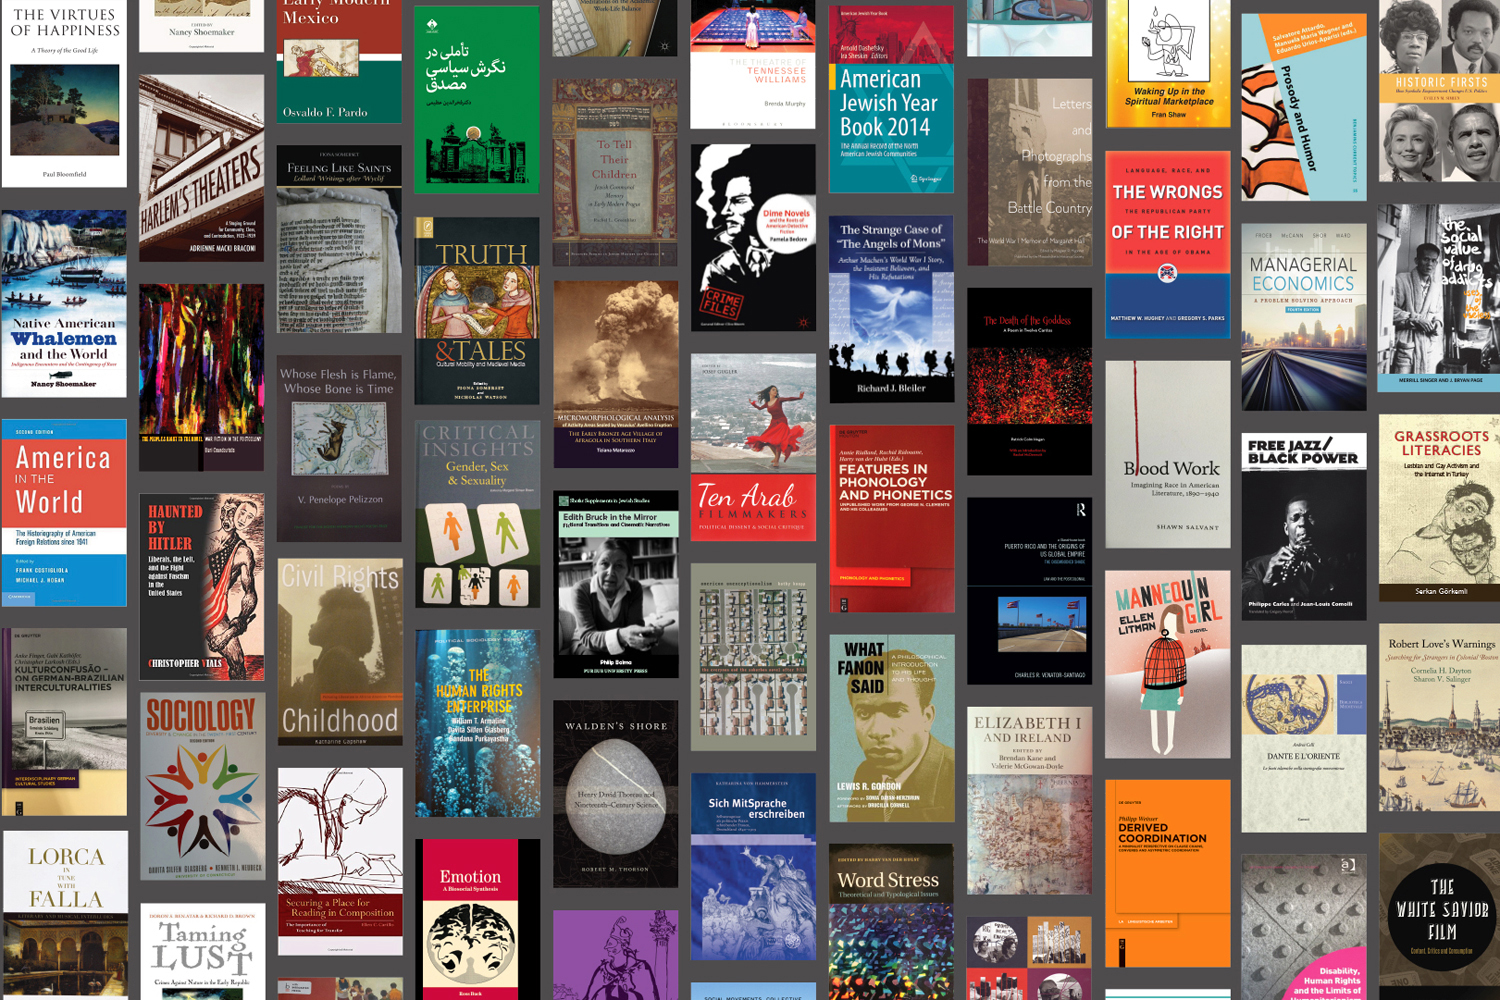 A selection of books by UConn authors in the humanities and related disciplines. (CLAS/UConn Photo)